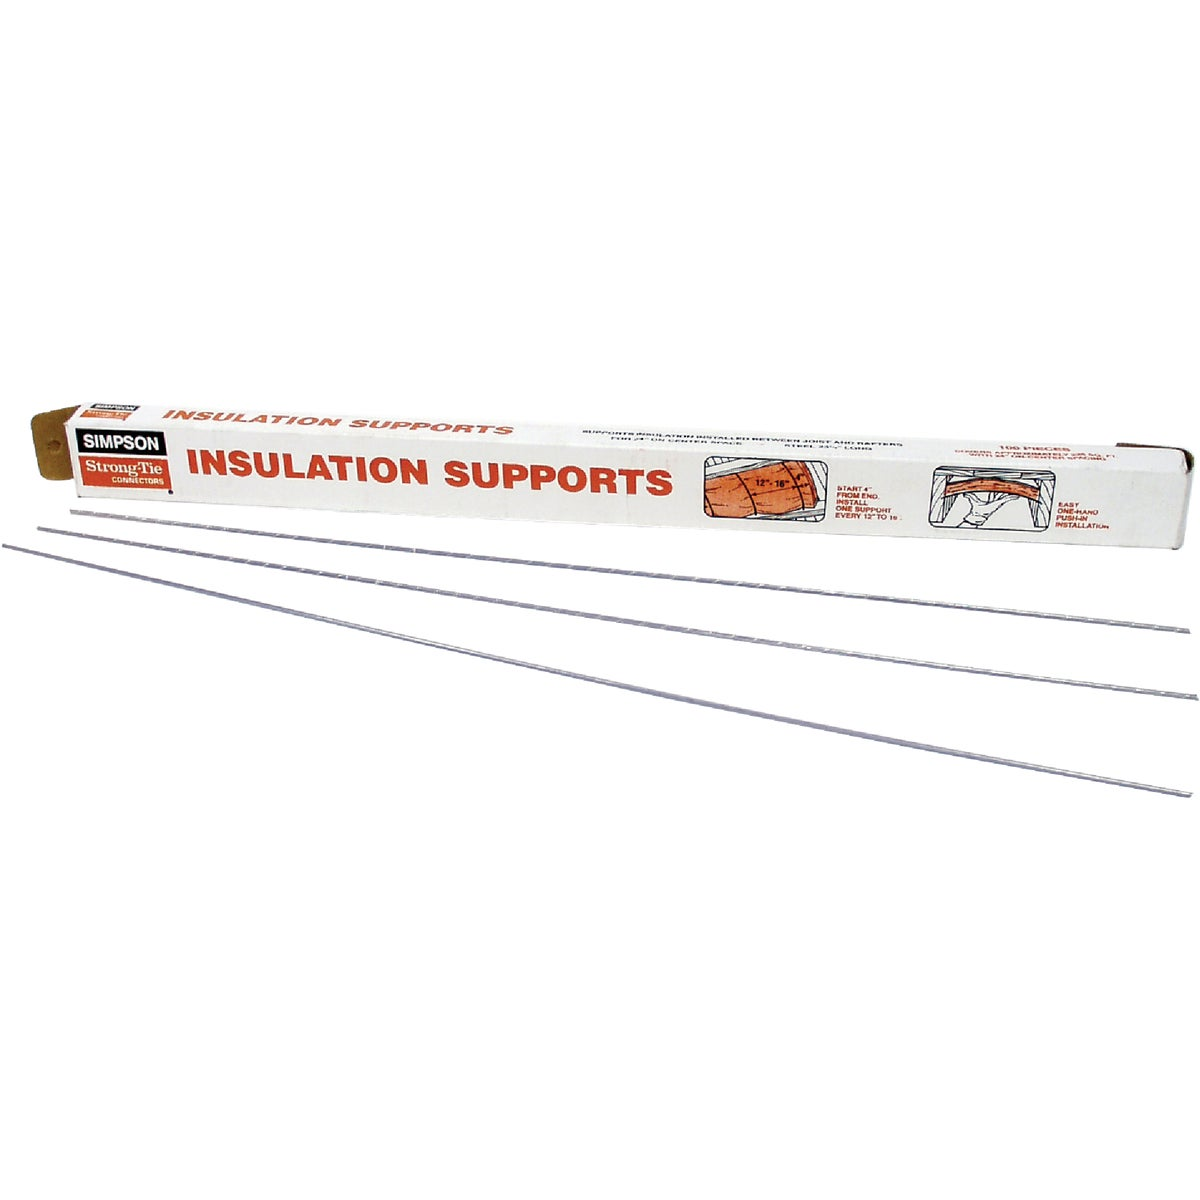 "24"" INSULATION SUPPORTS - IS24-R100 by Simpson Strong Tie"